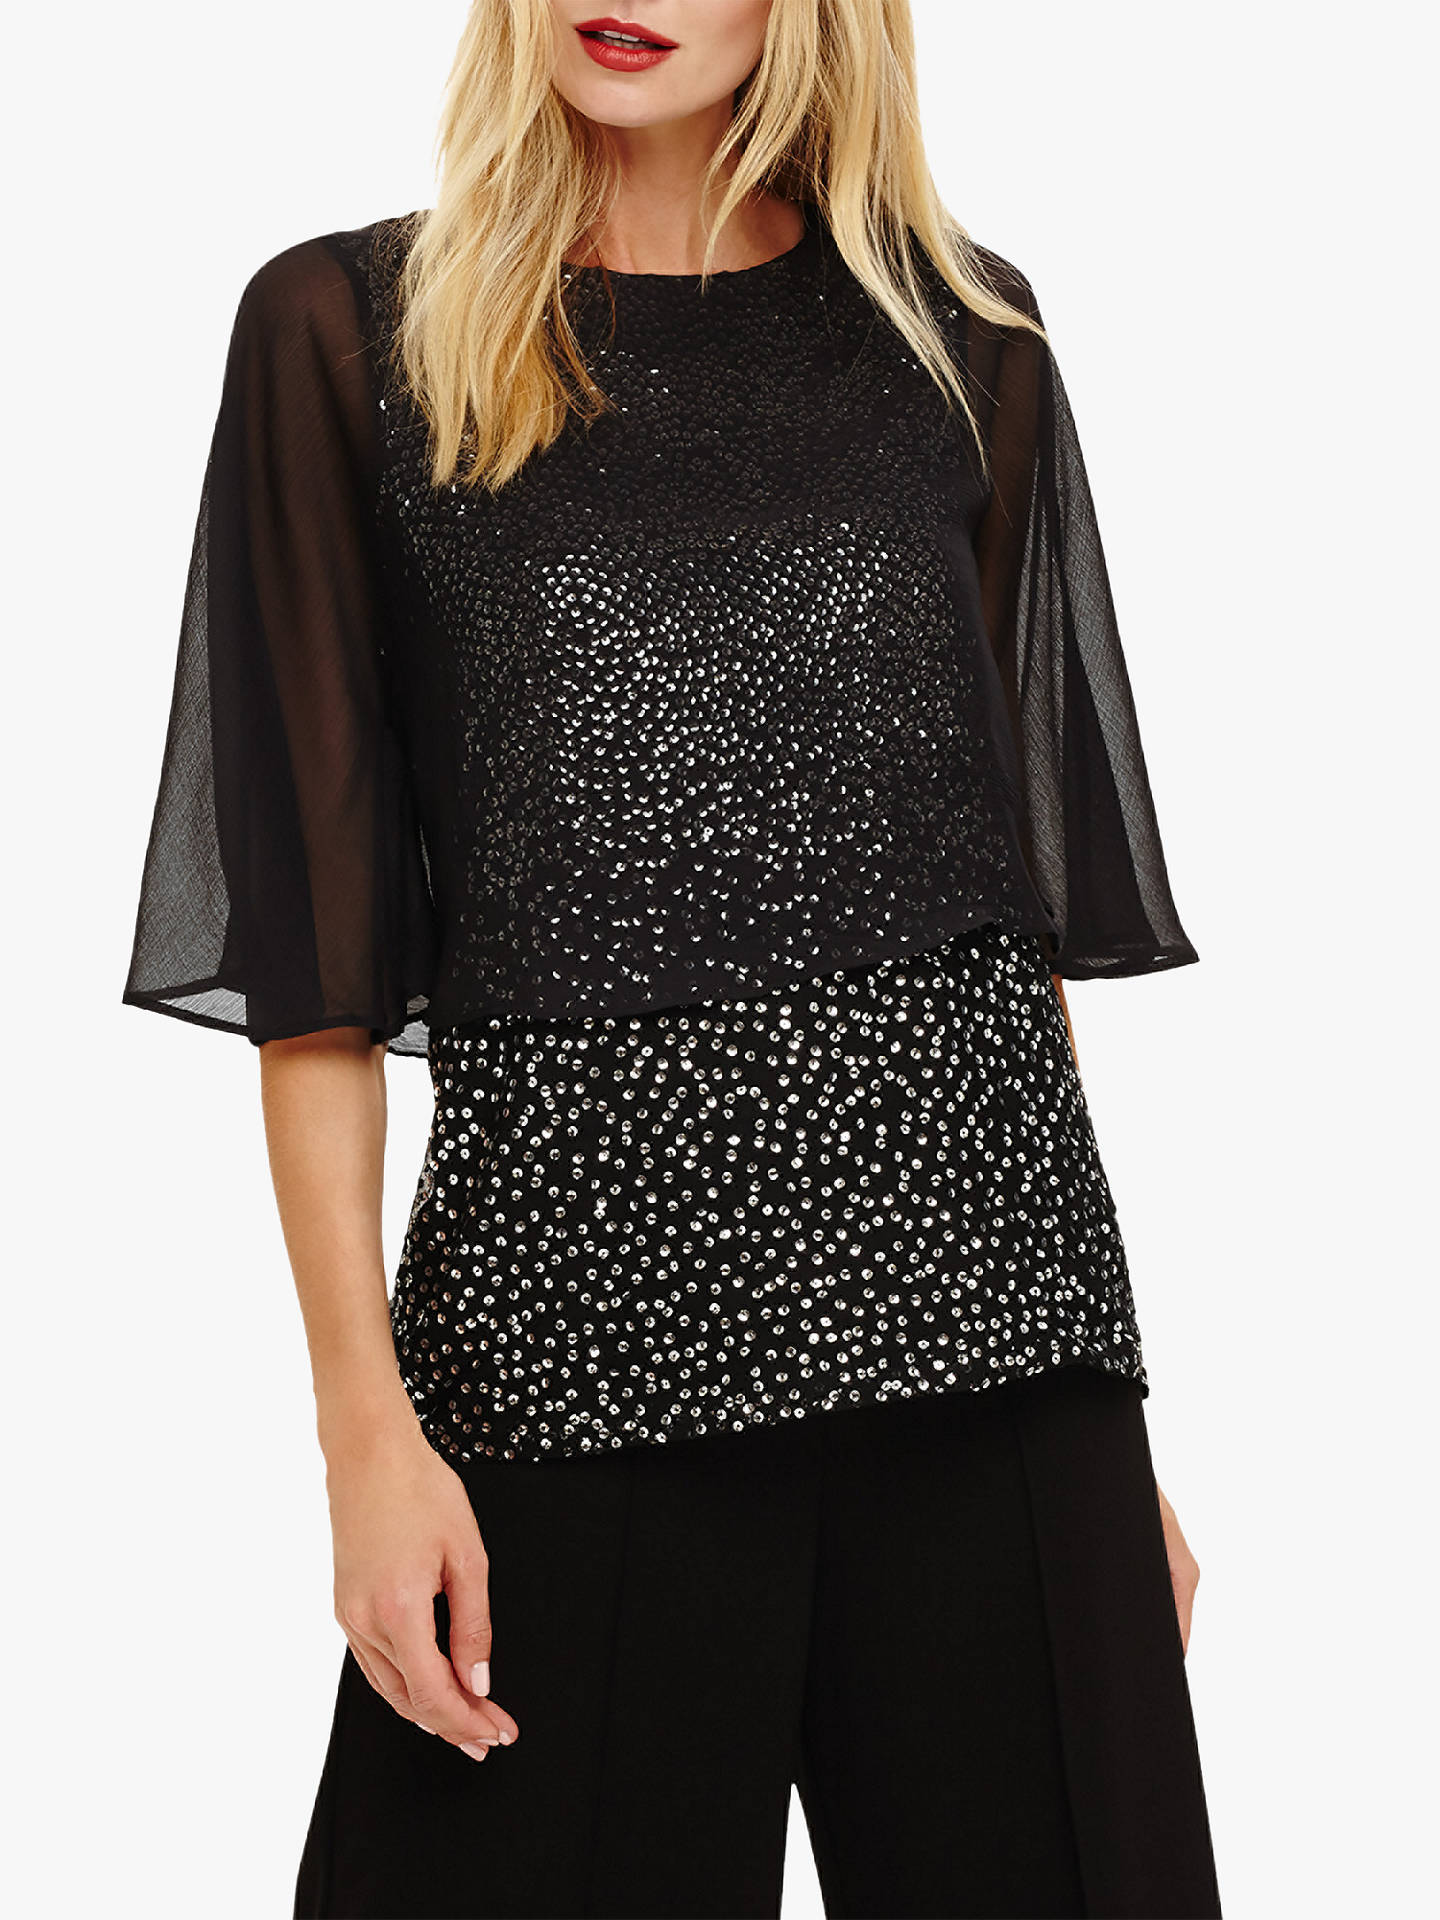 bd4a9b2c1873c8 Buy Phase Eight Iiona Sequin Blouse, Black/Ivory, 8 Online at johnlewis.